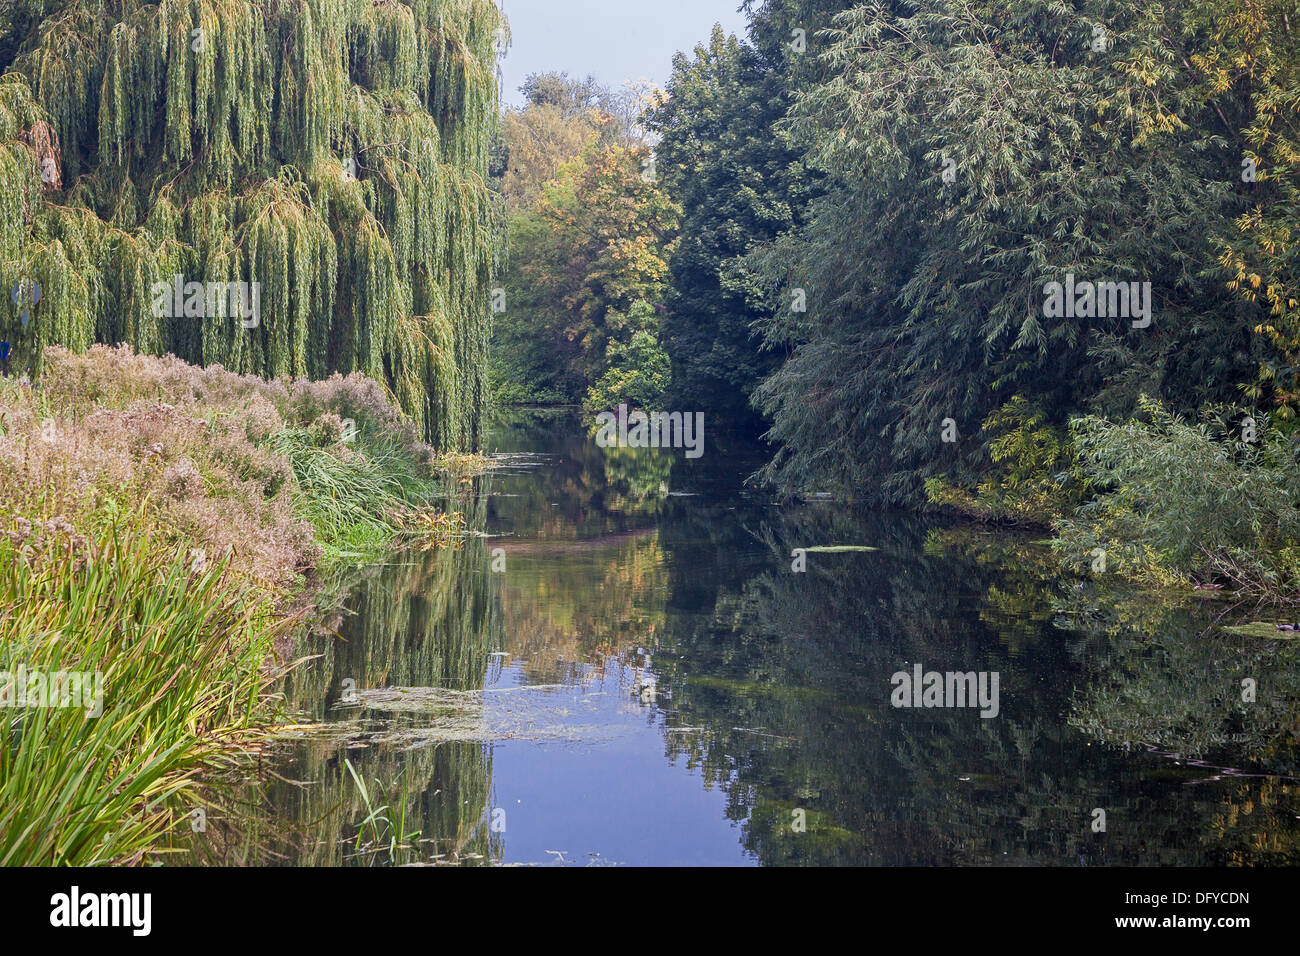 A stretch of the River Chelmer running through Chelmsford city centre - Stock Image